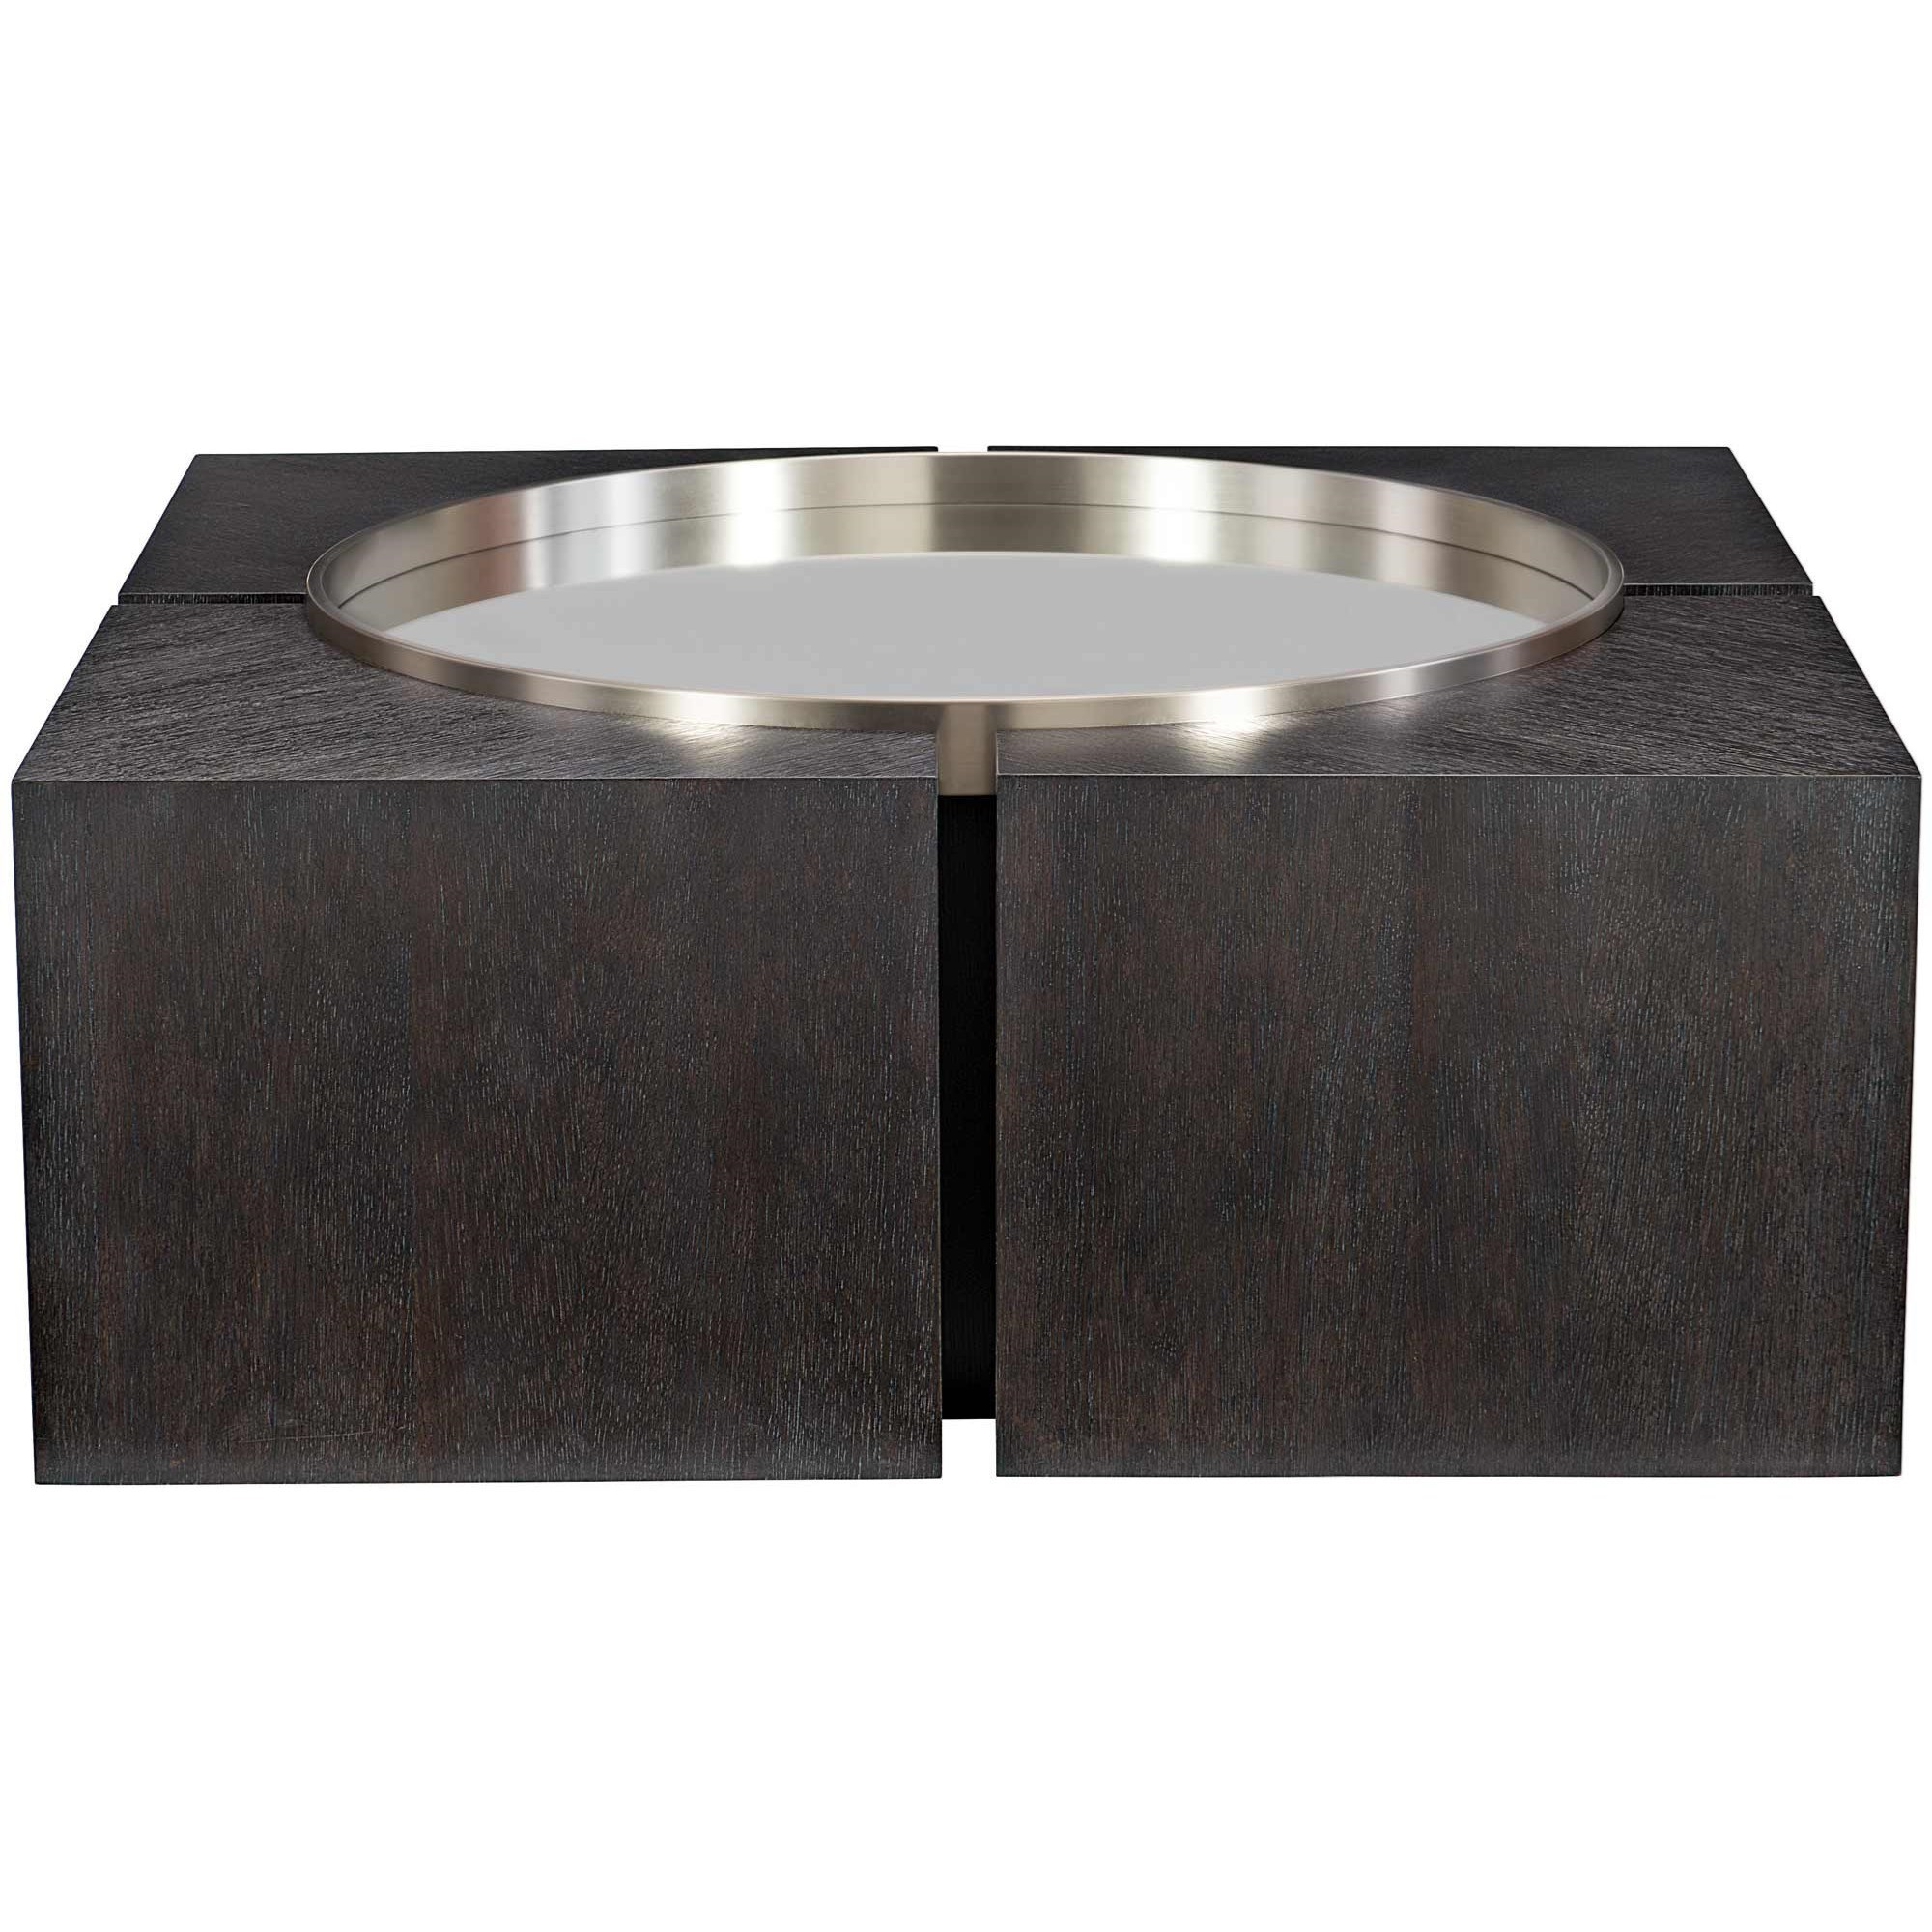 Decorage Cocktail Table  by Bernhardt at Baer's Furniture